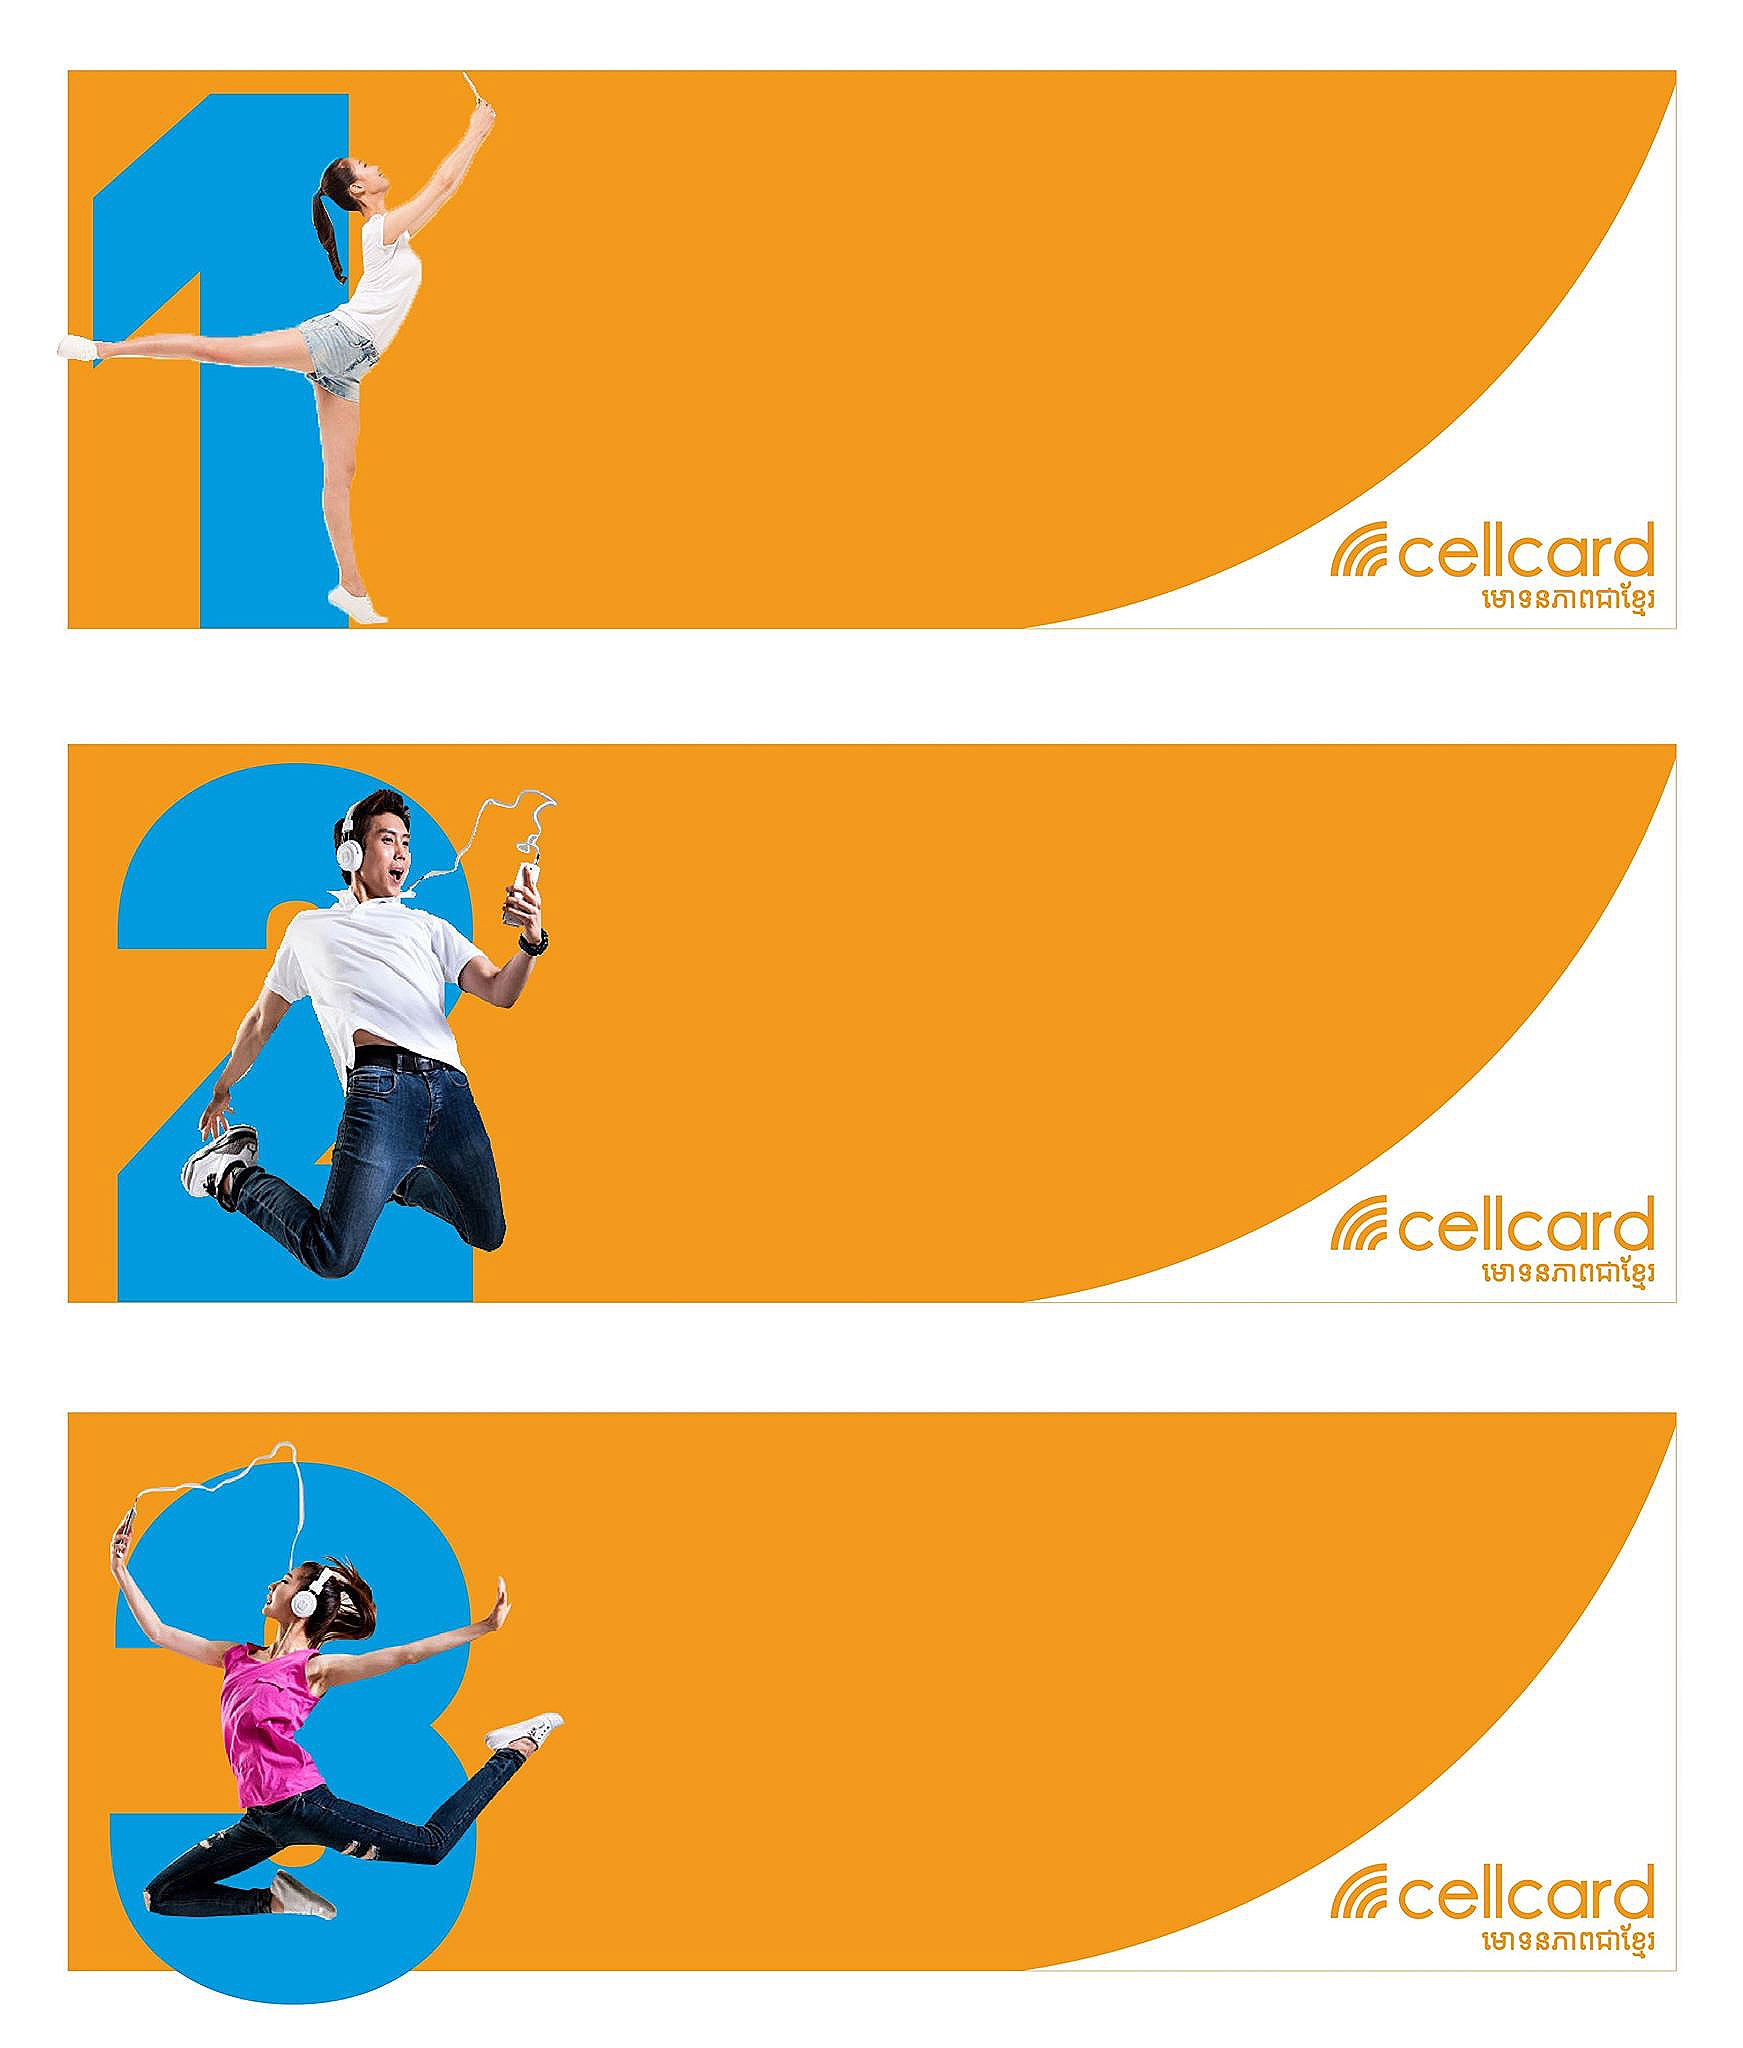 Cellcard Ads